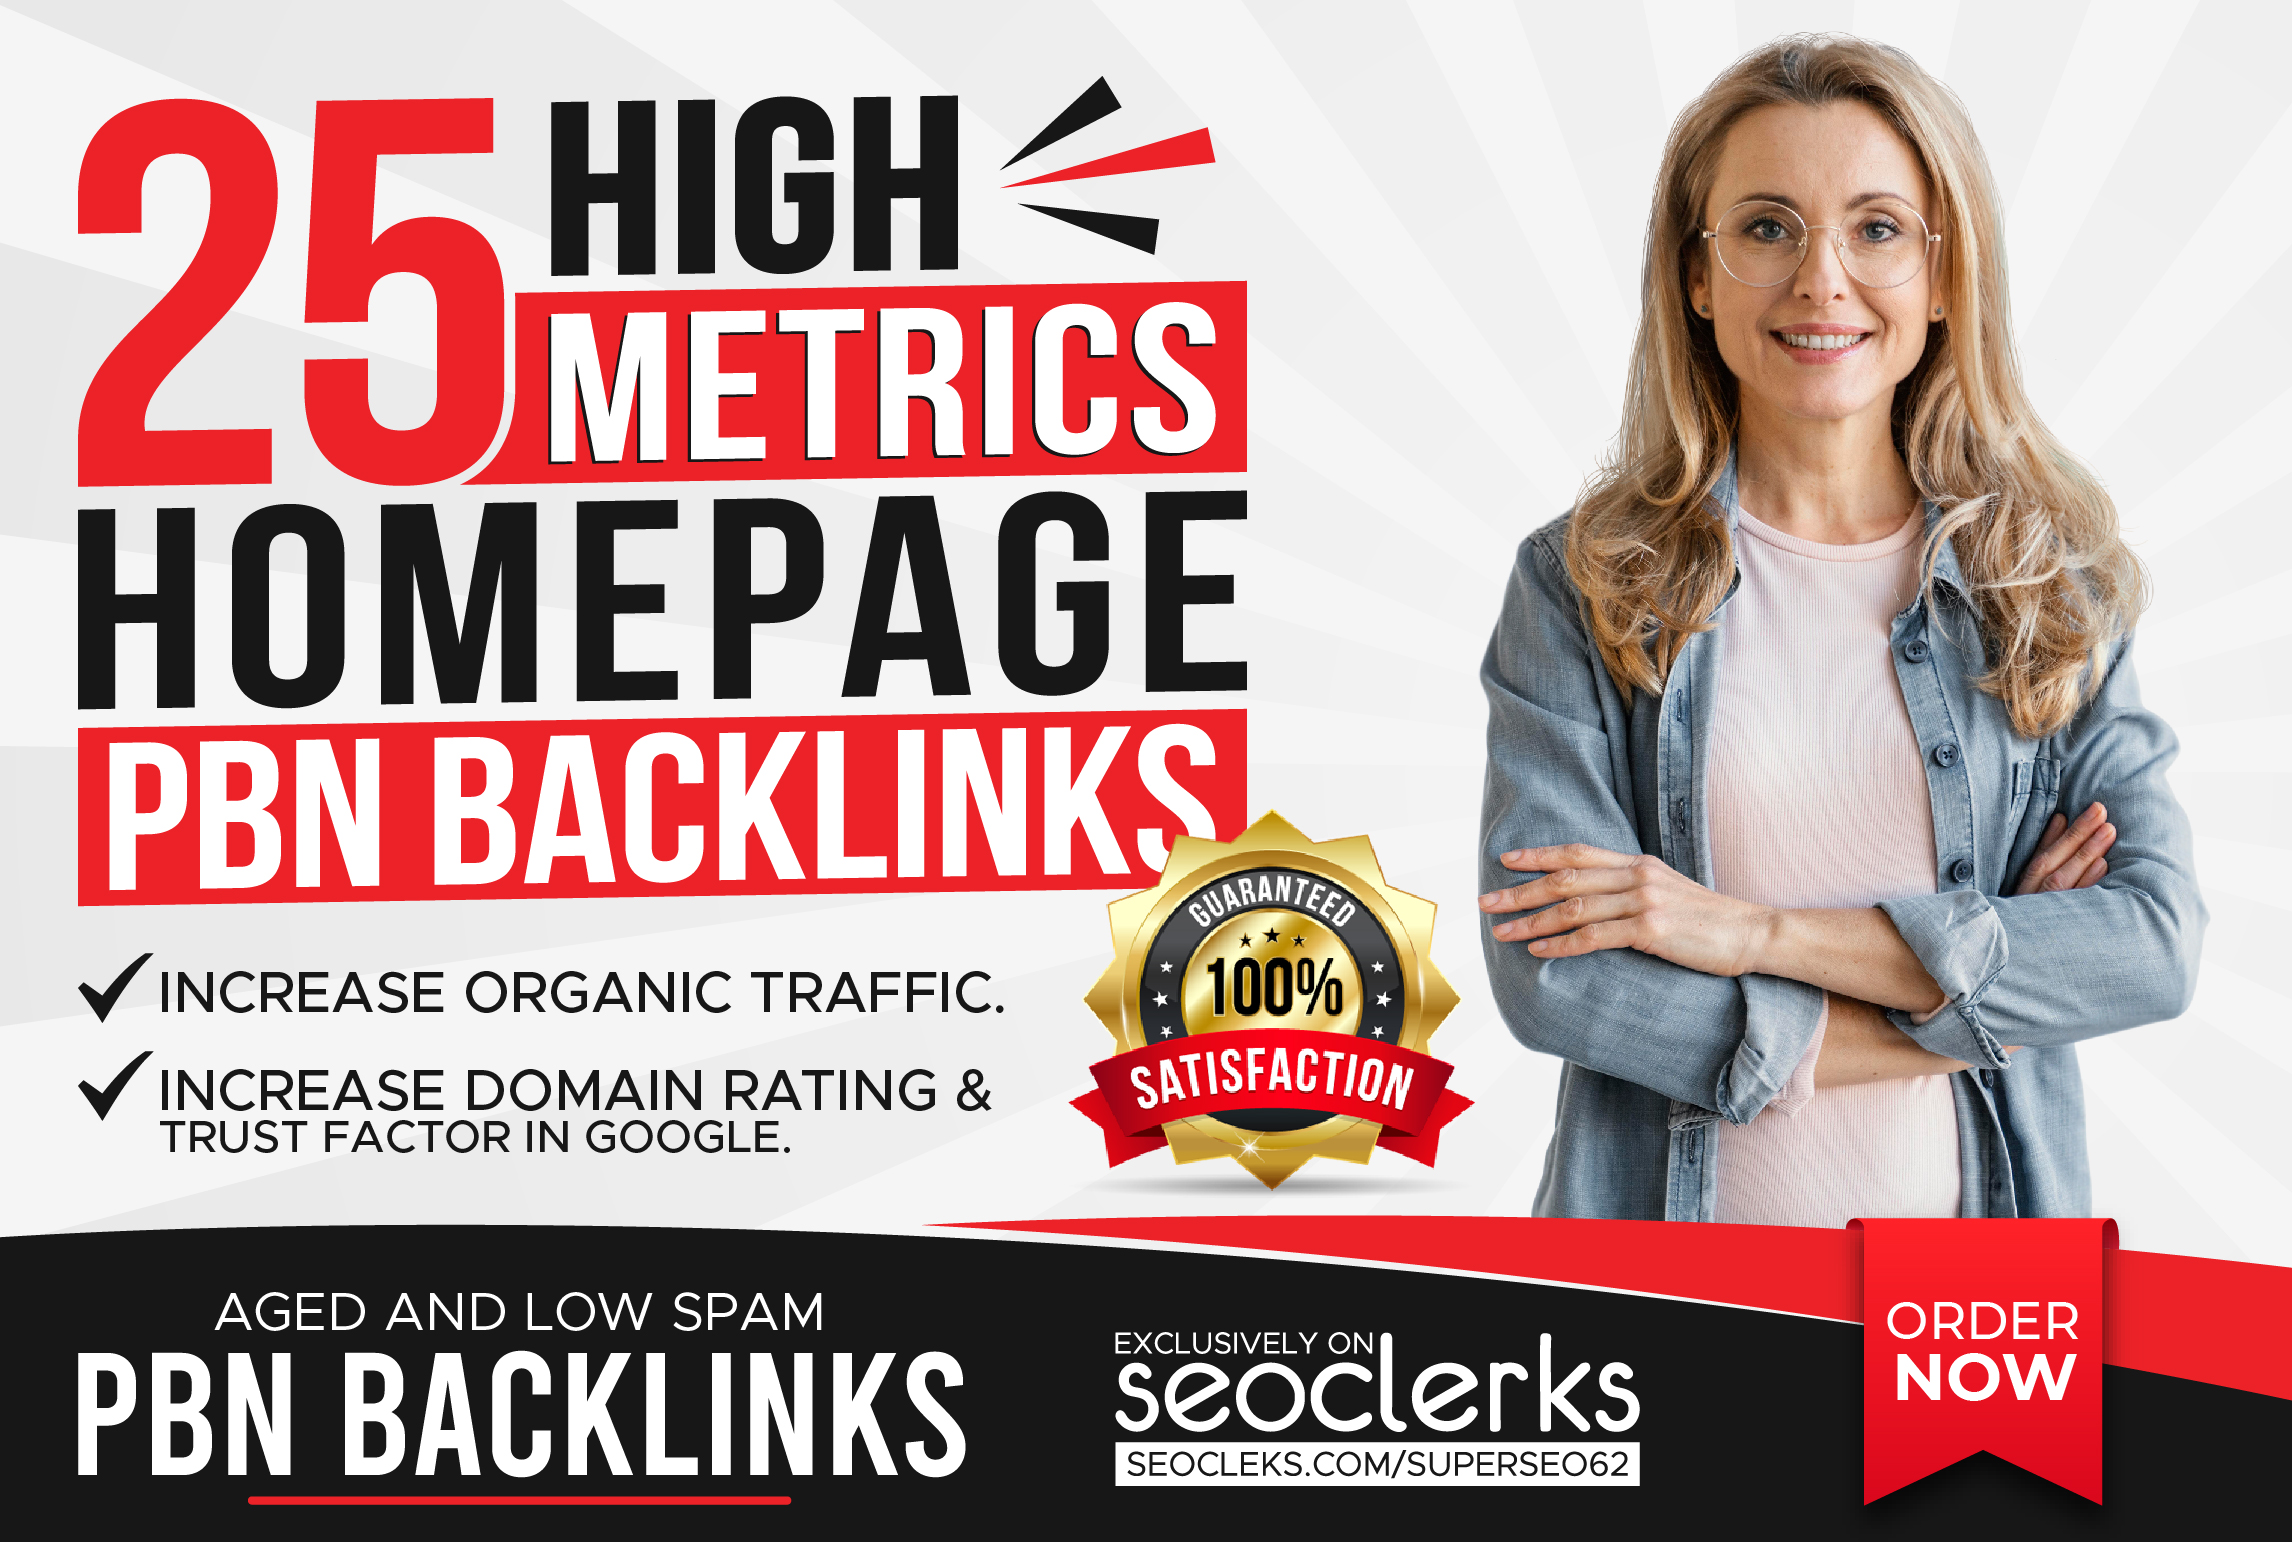 Get 25 PBN DA30+ Aged Homepage PBN Backlinks with High Metrics And Low Spam